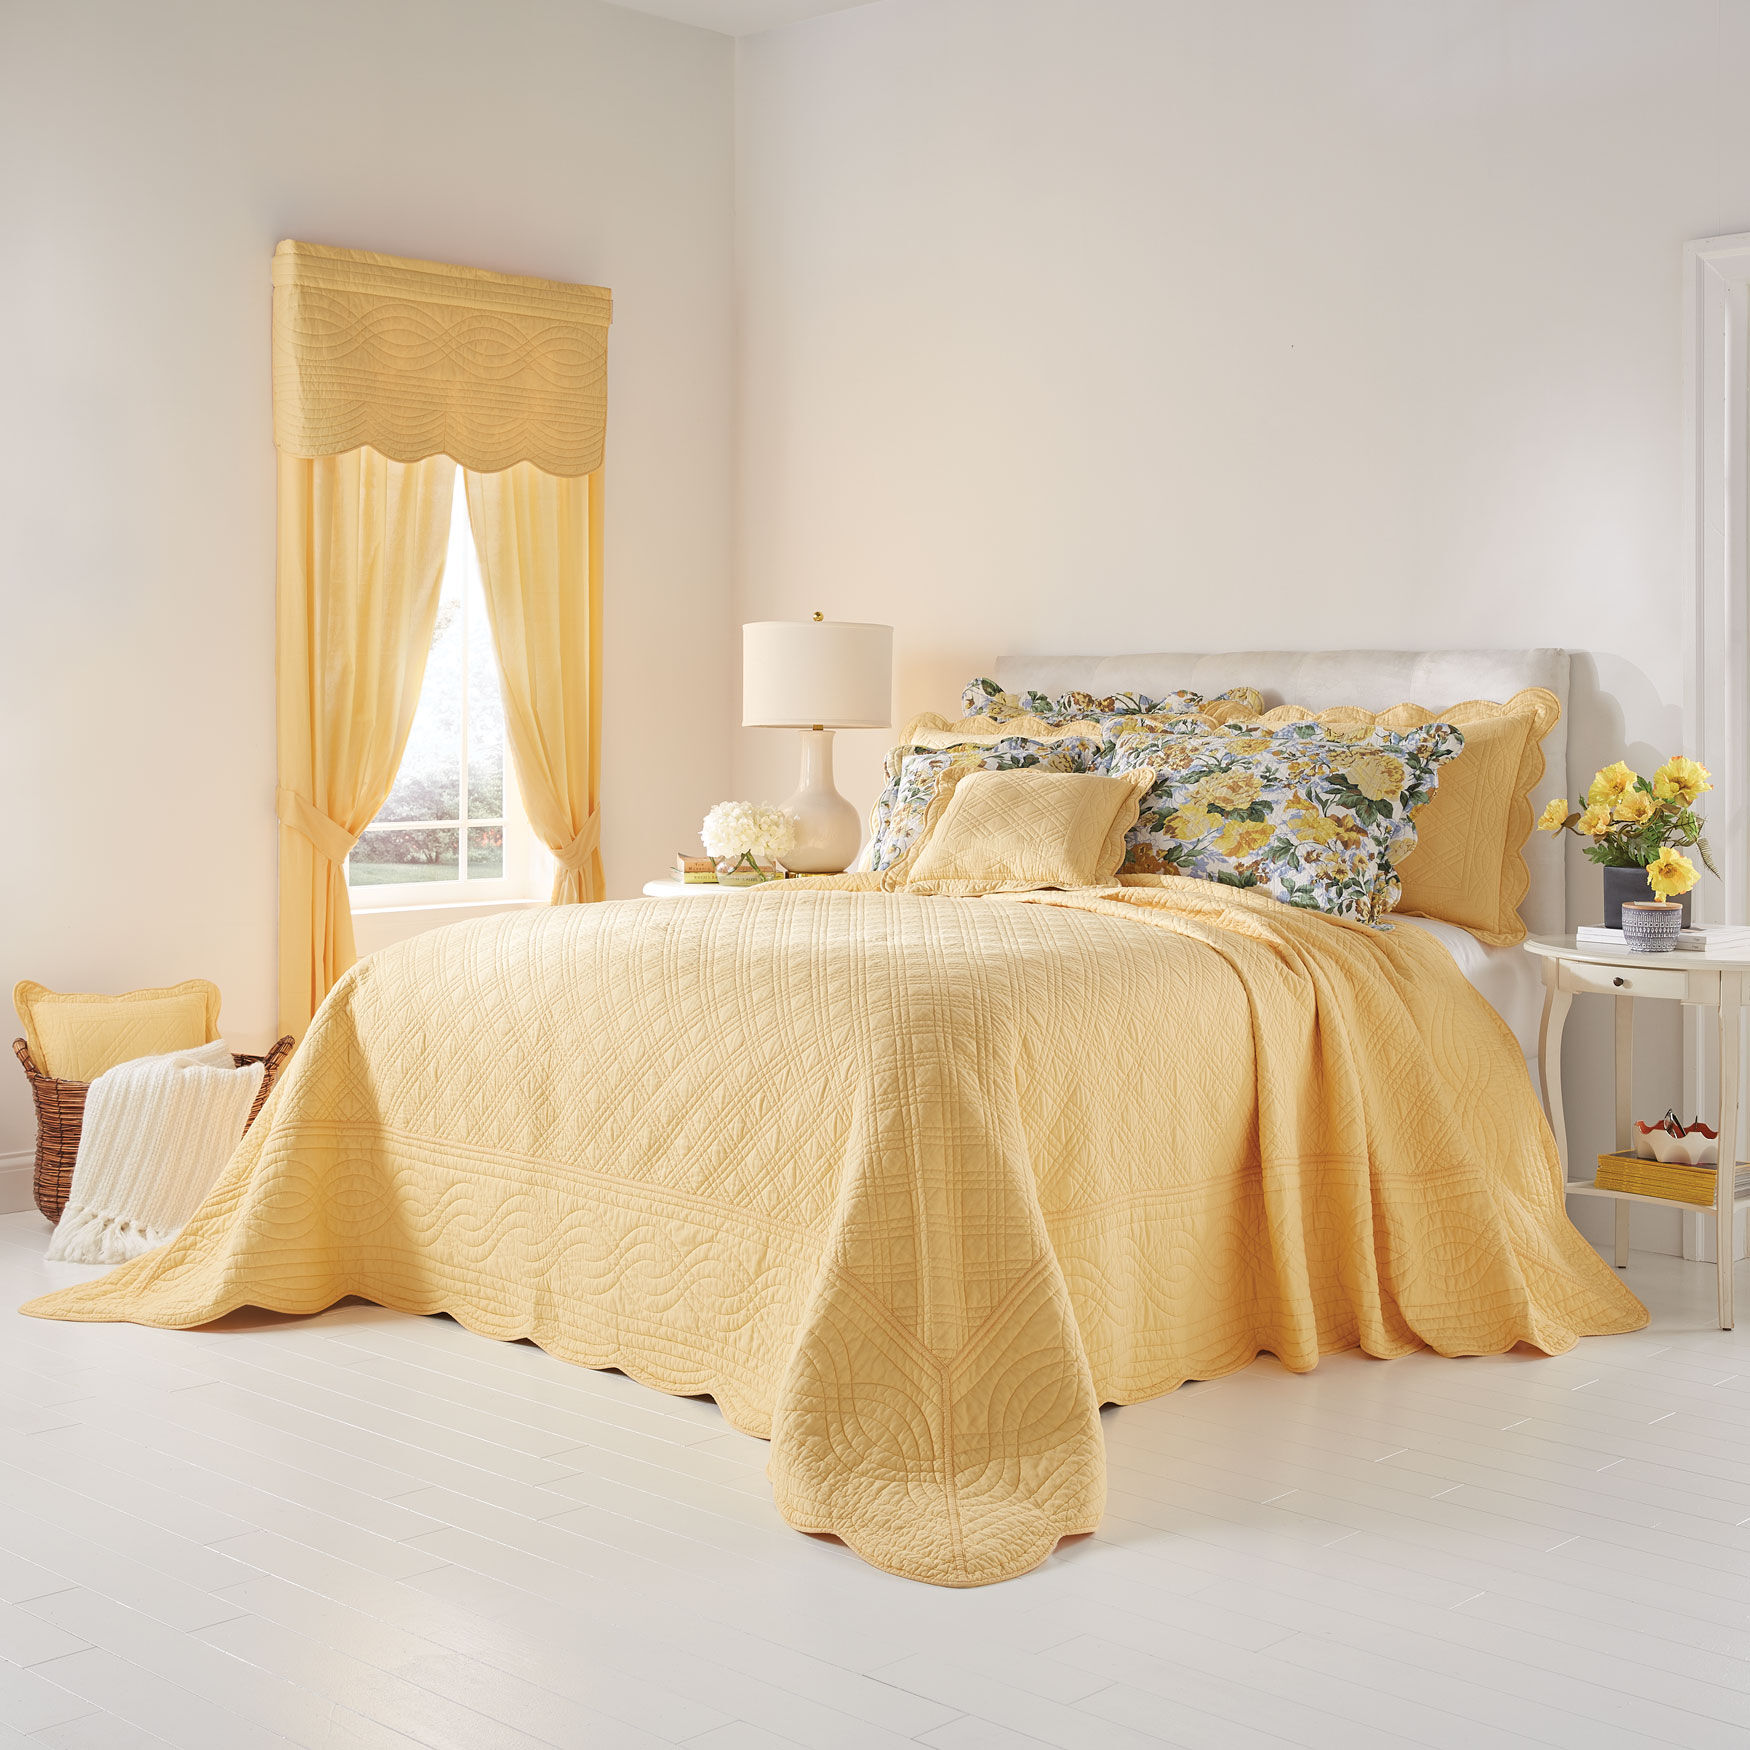 Full Blue Yellow Floral BrylaneHome Claudine Floral Printed Bedspread